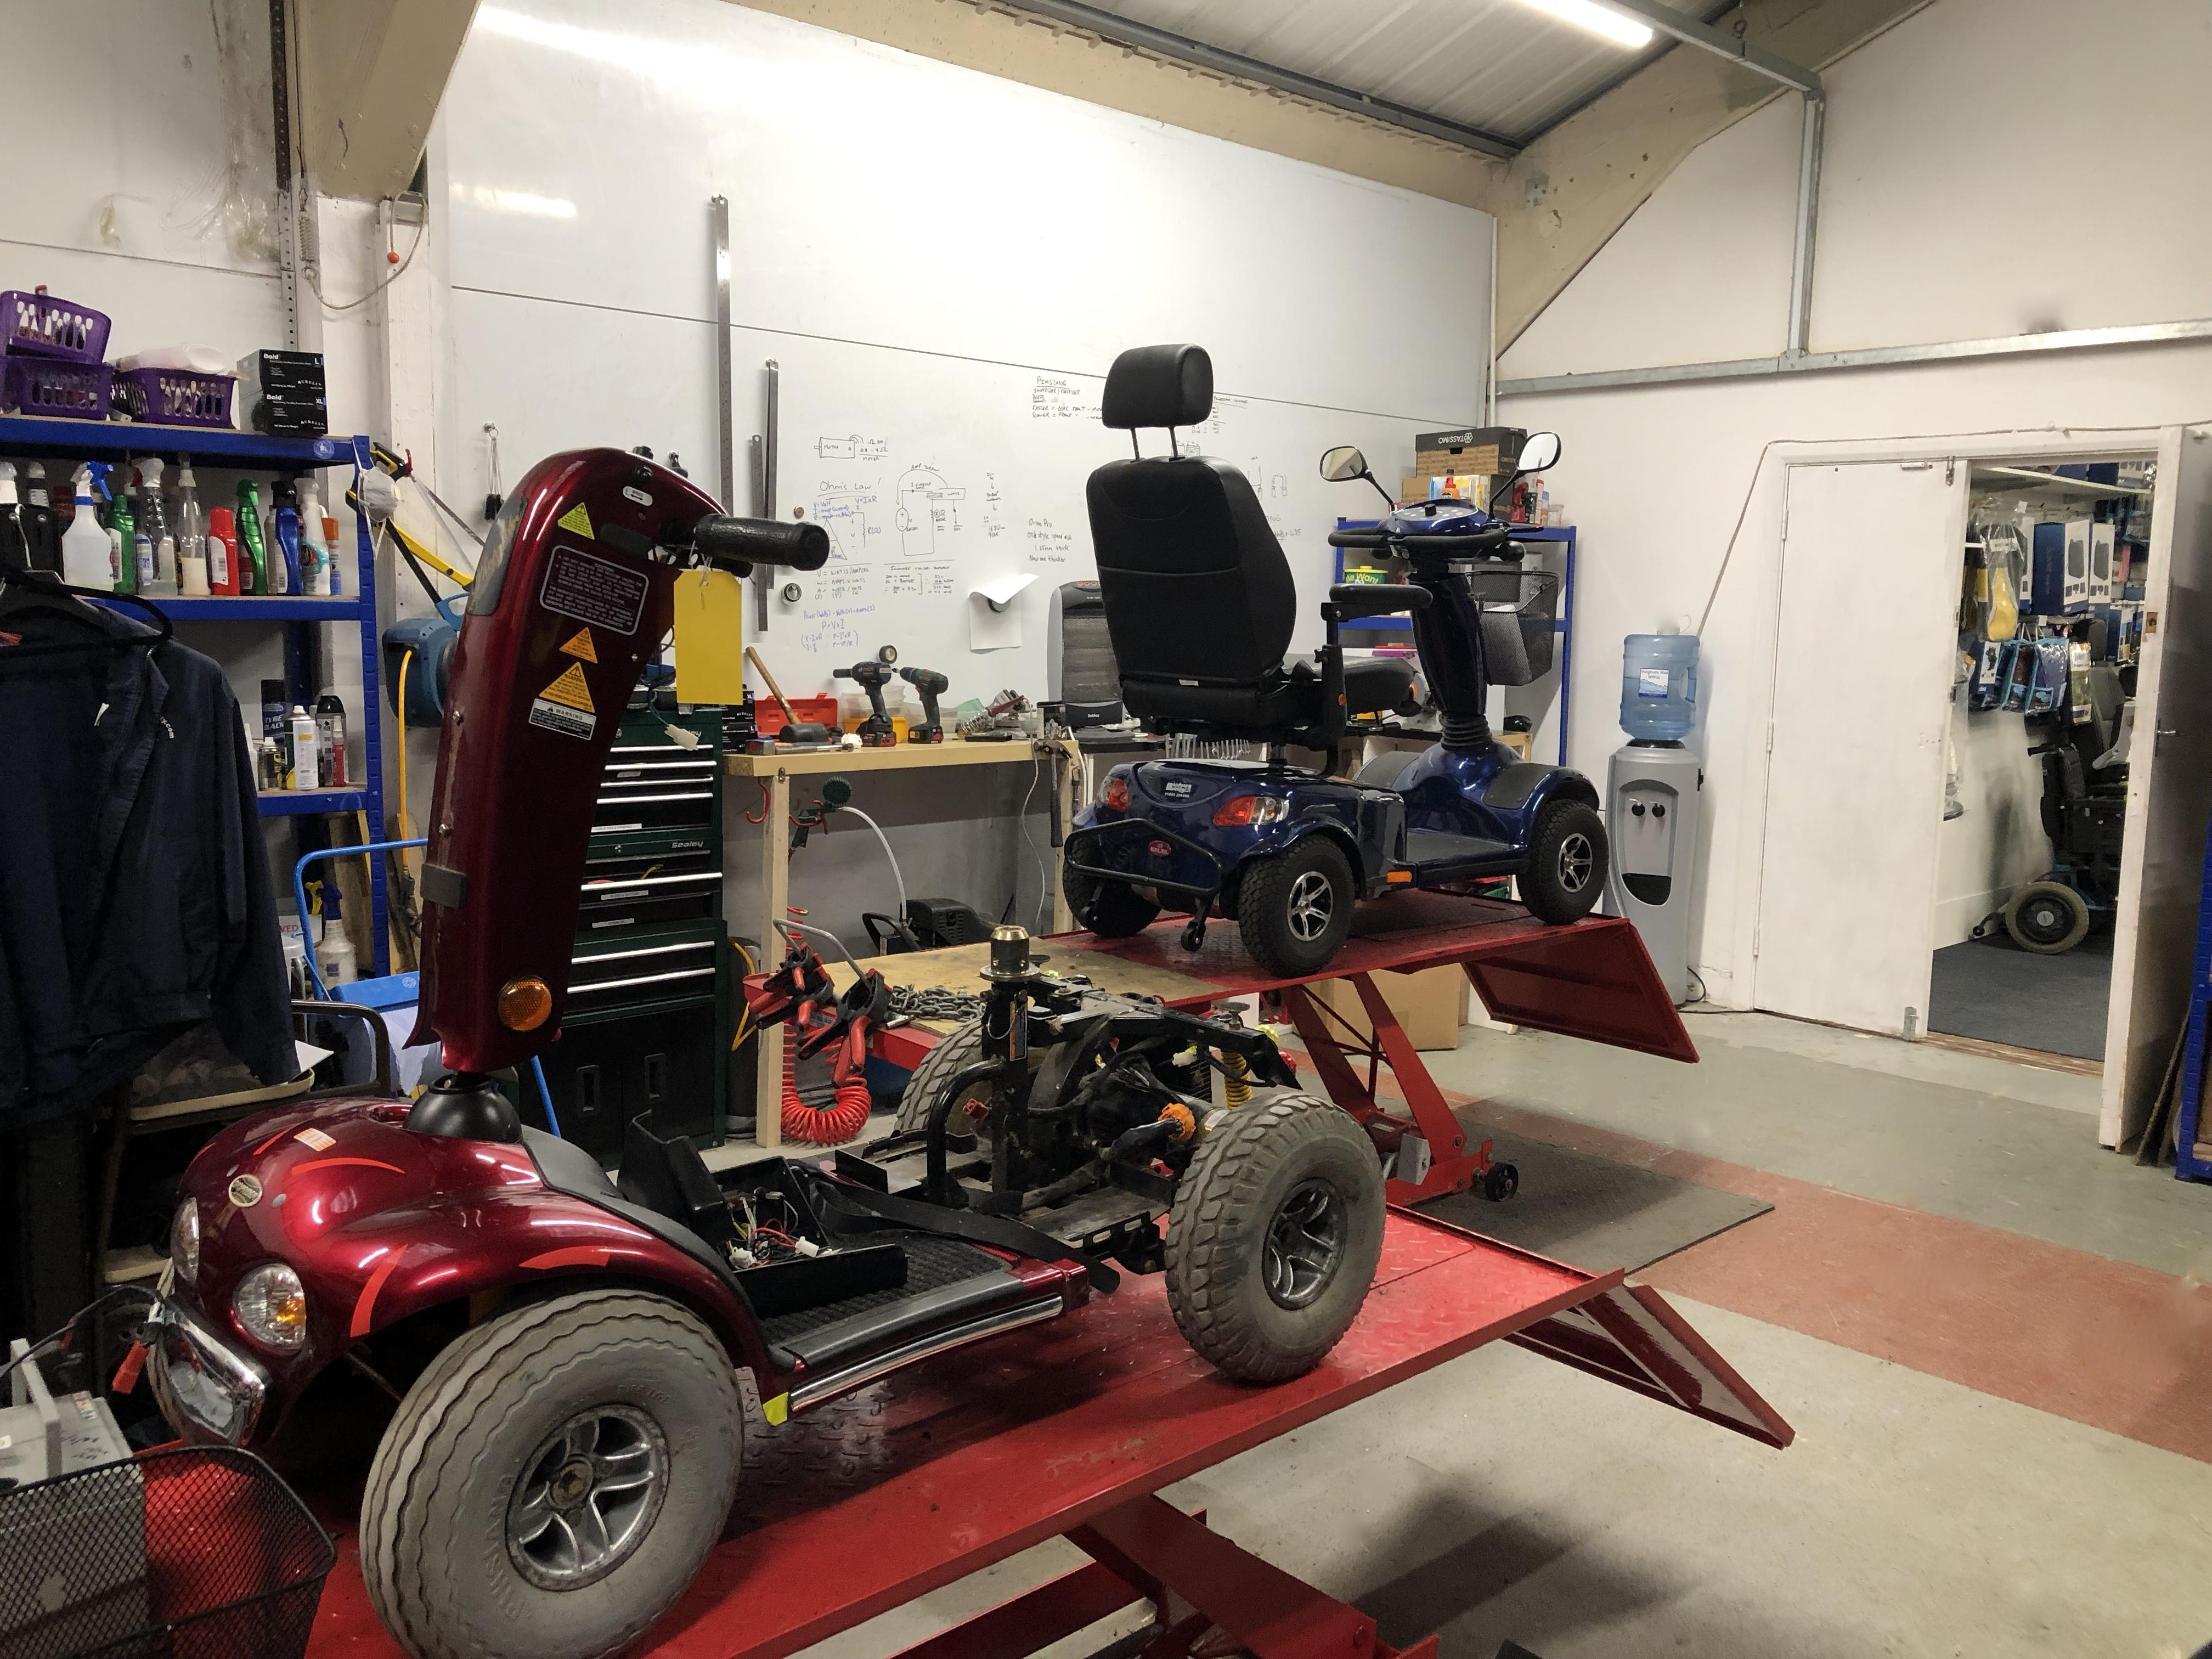 Mobility Scooter being repaired in Margate